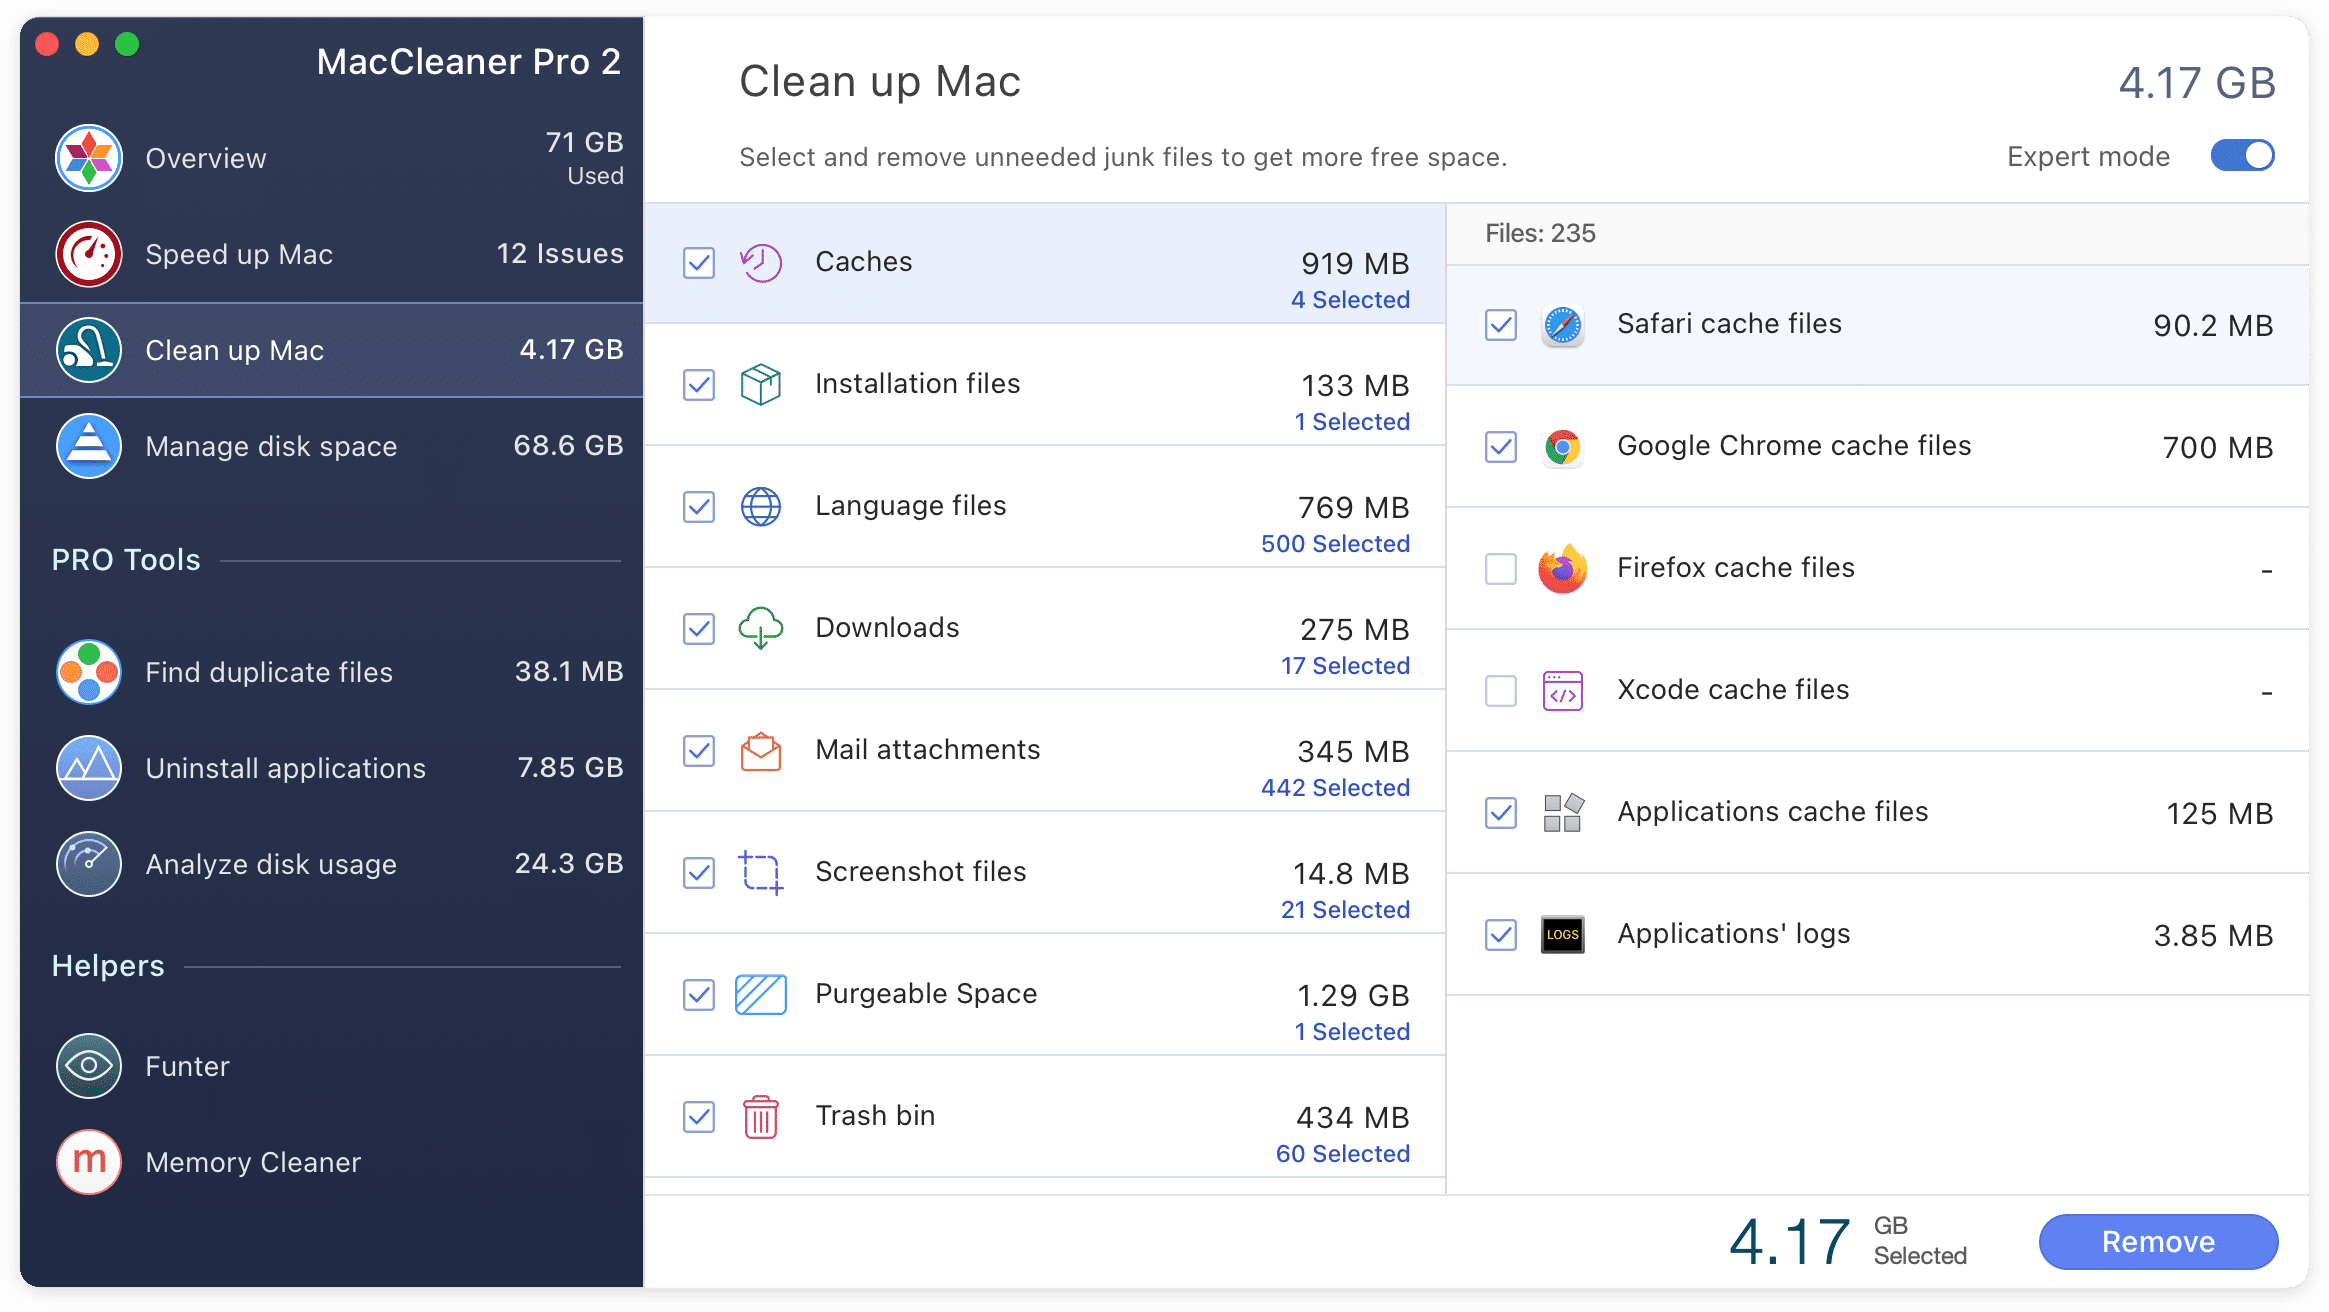 MacCleaner Pro showing junk files